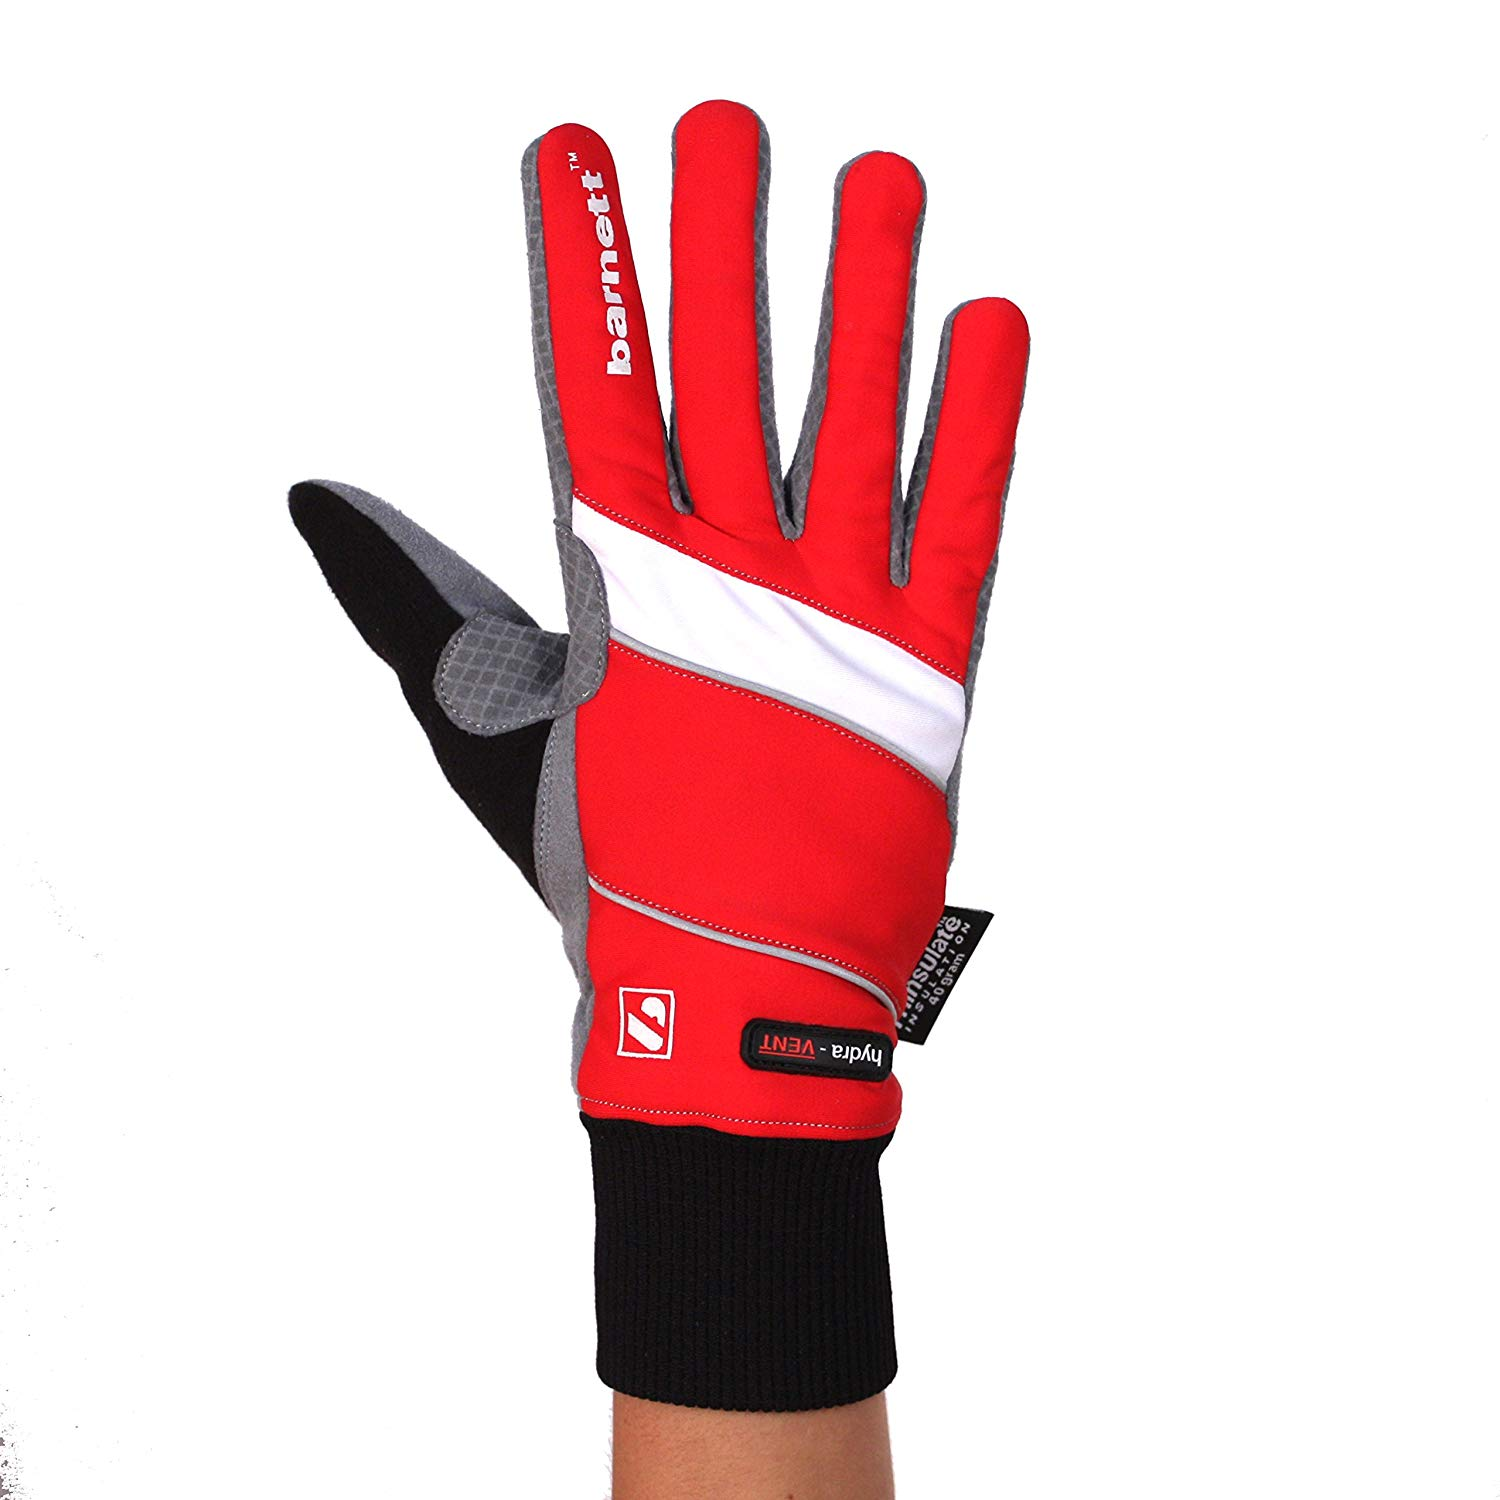 Barnett NBG-08 Cross Country Gloves- for Outside temperatures -5/-15°C-ski Alpine-ski- red